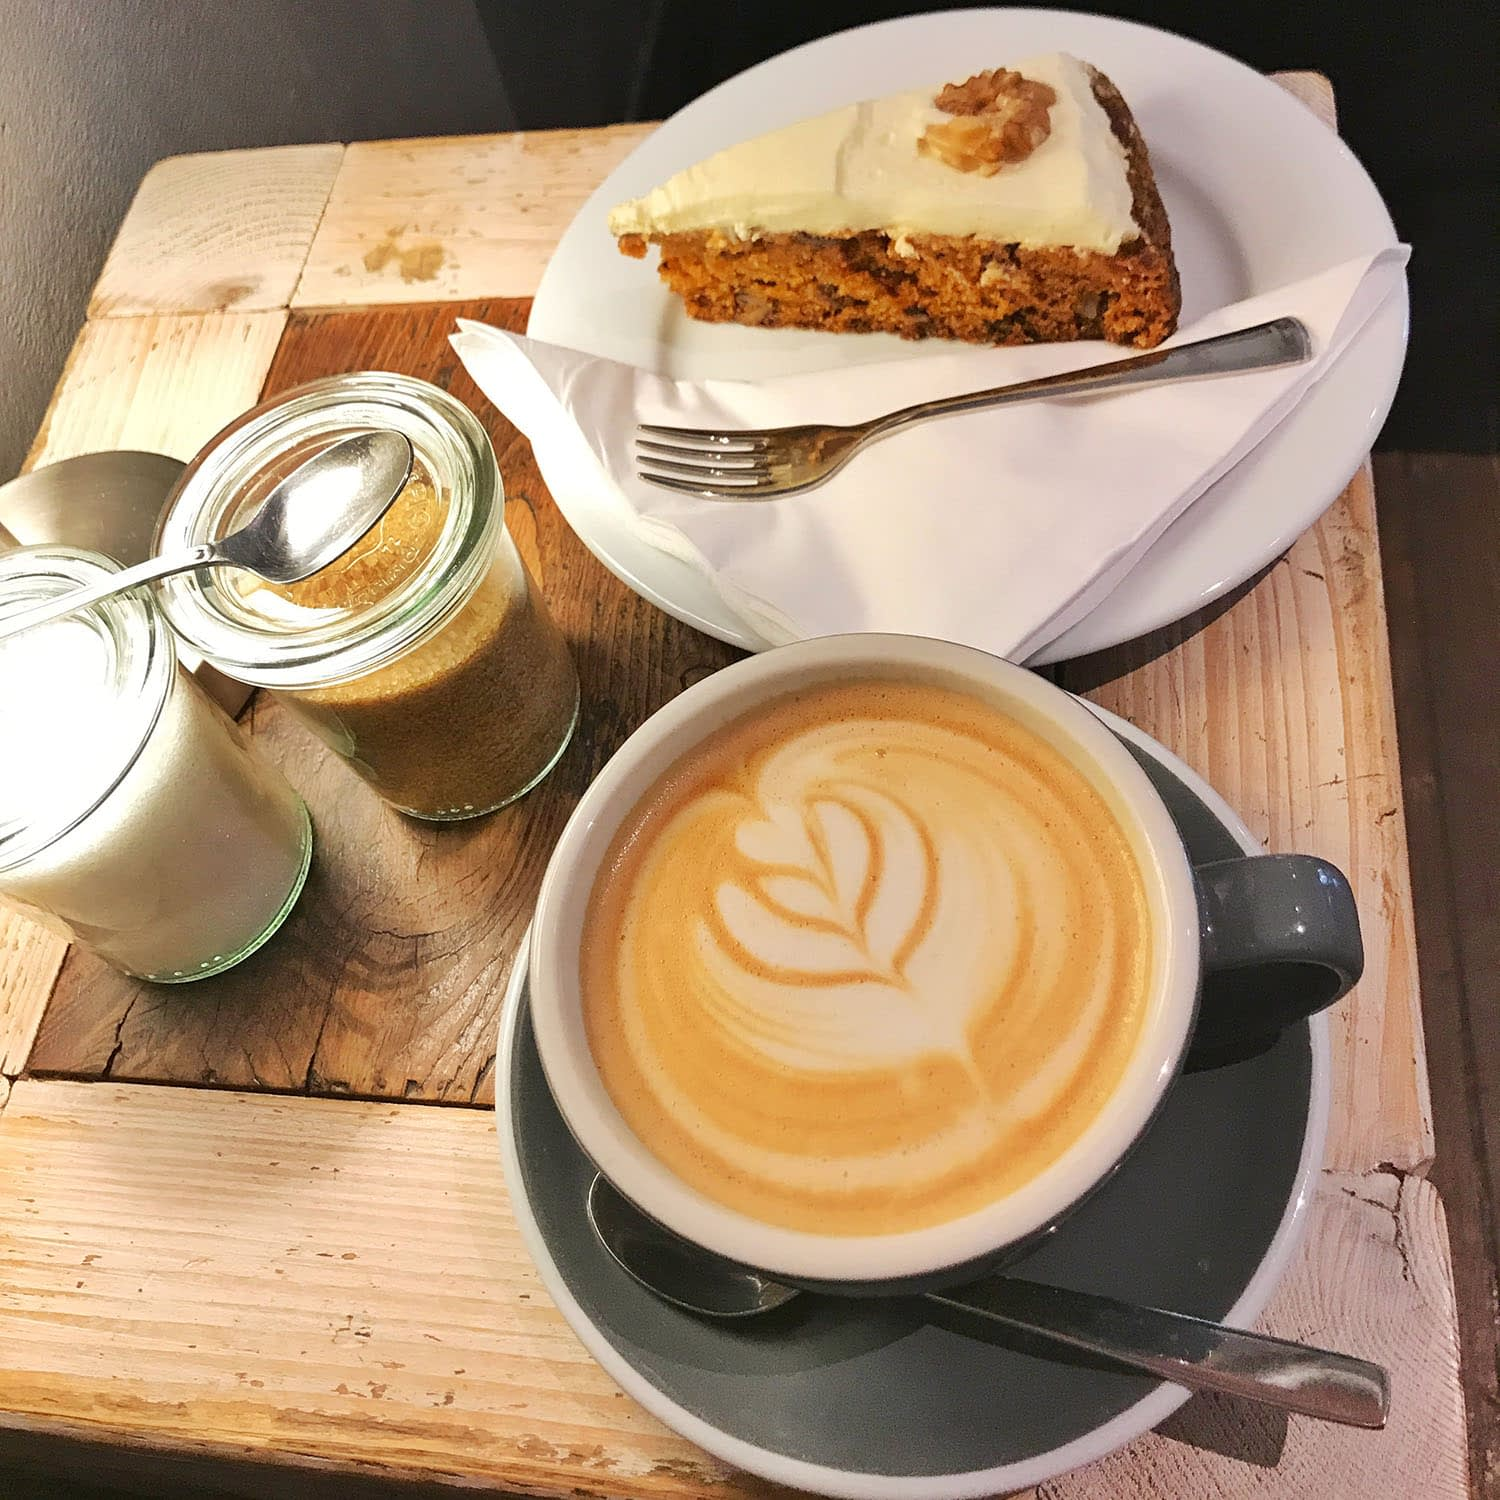 latte with leaf in the foam and a carrot cake on a wooden table